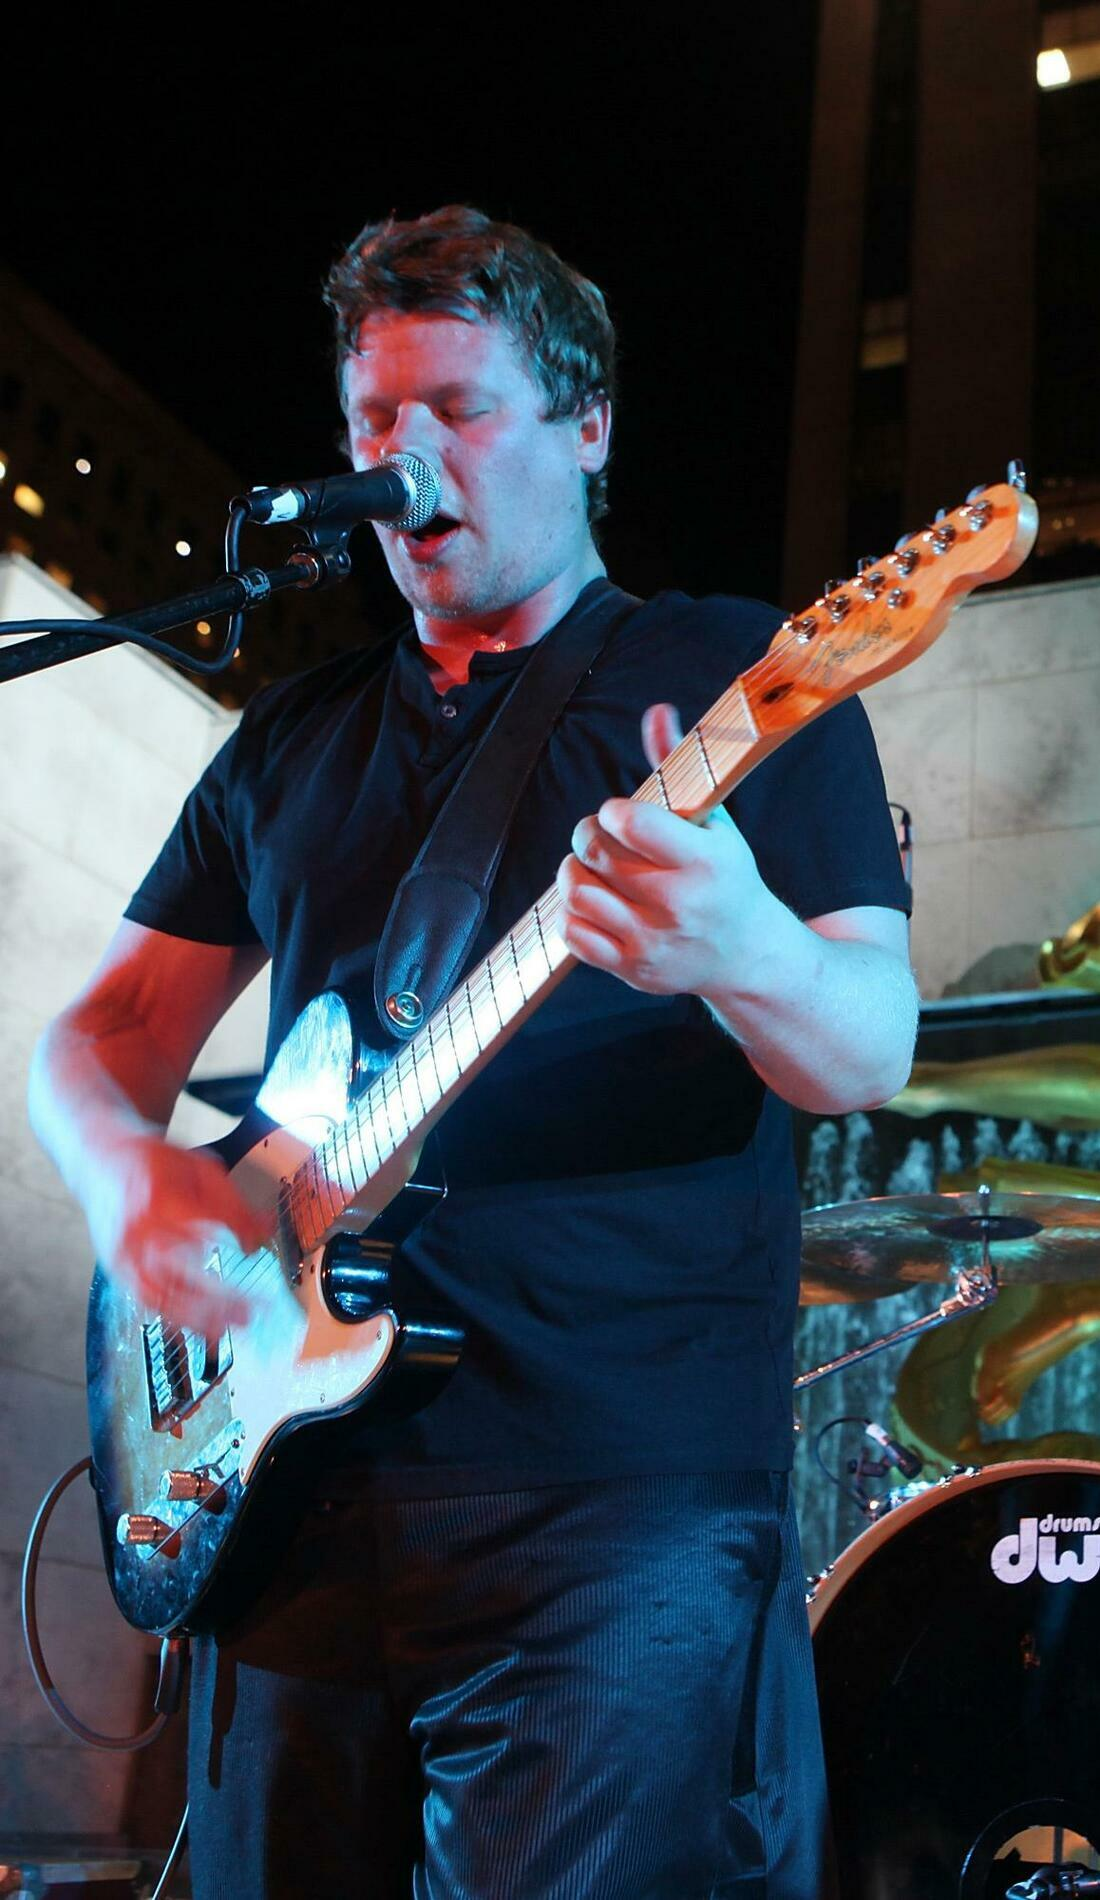 A We Were Promised Jetpacks live event